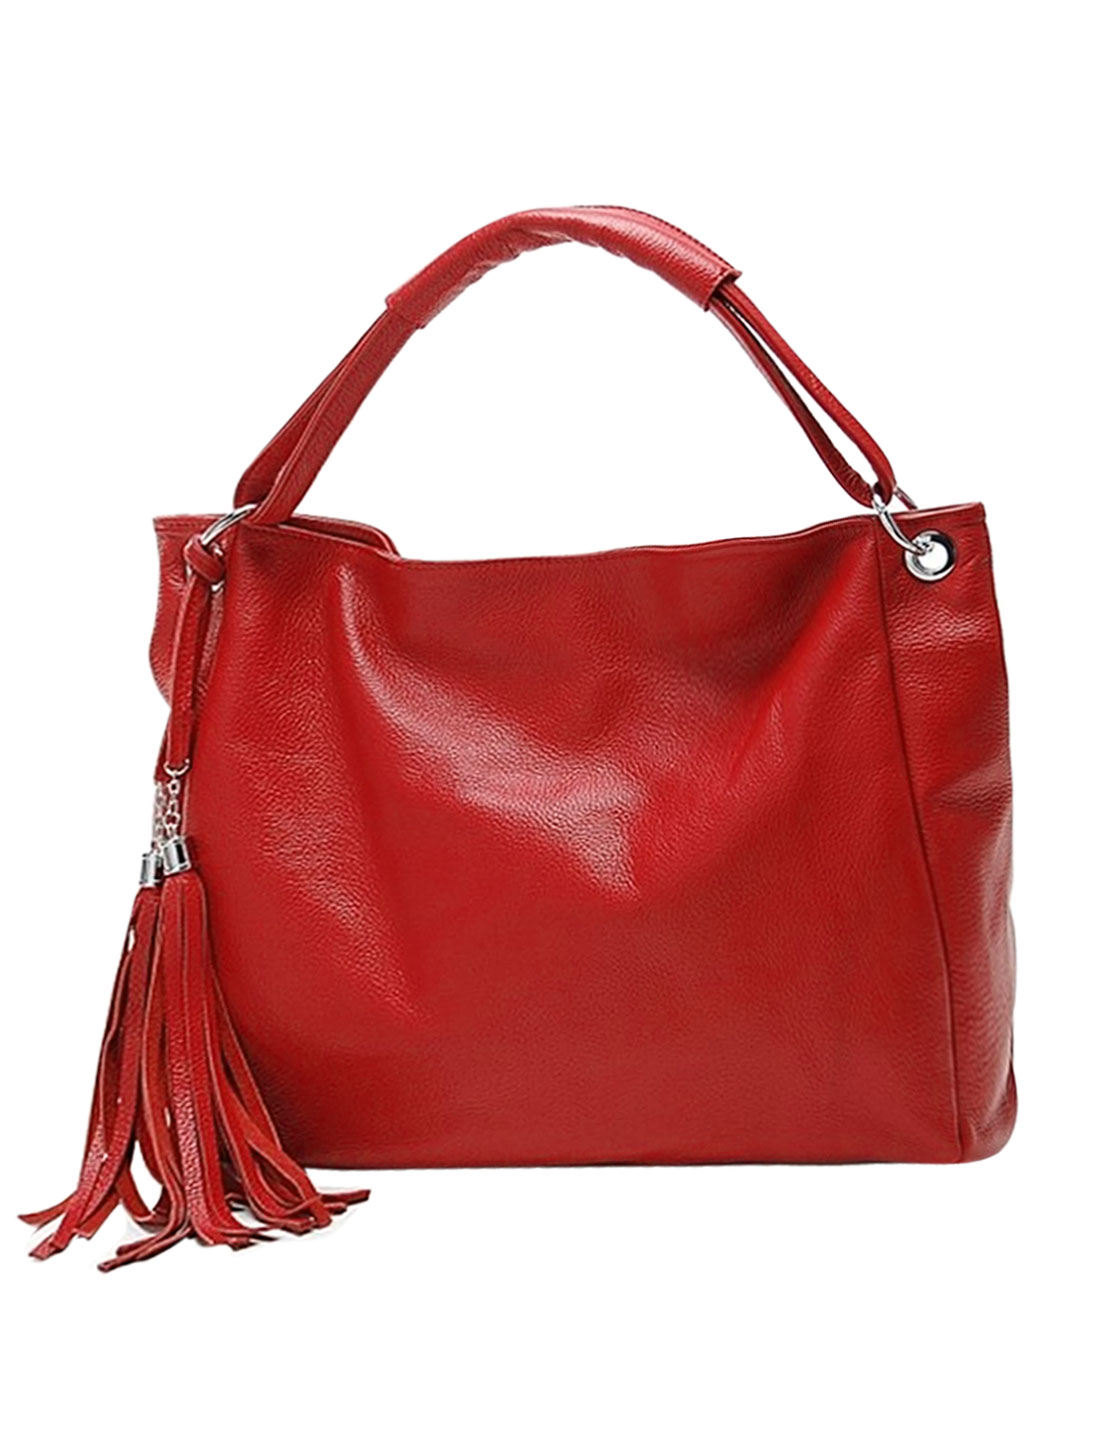 Woman Tassels Embellished Textured PU Leather Slouch Bag Red